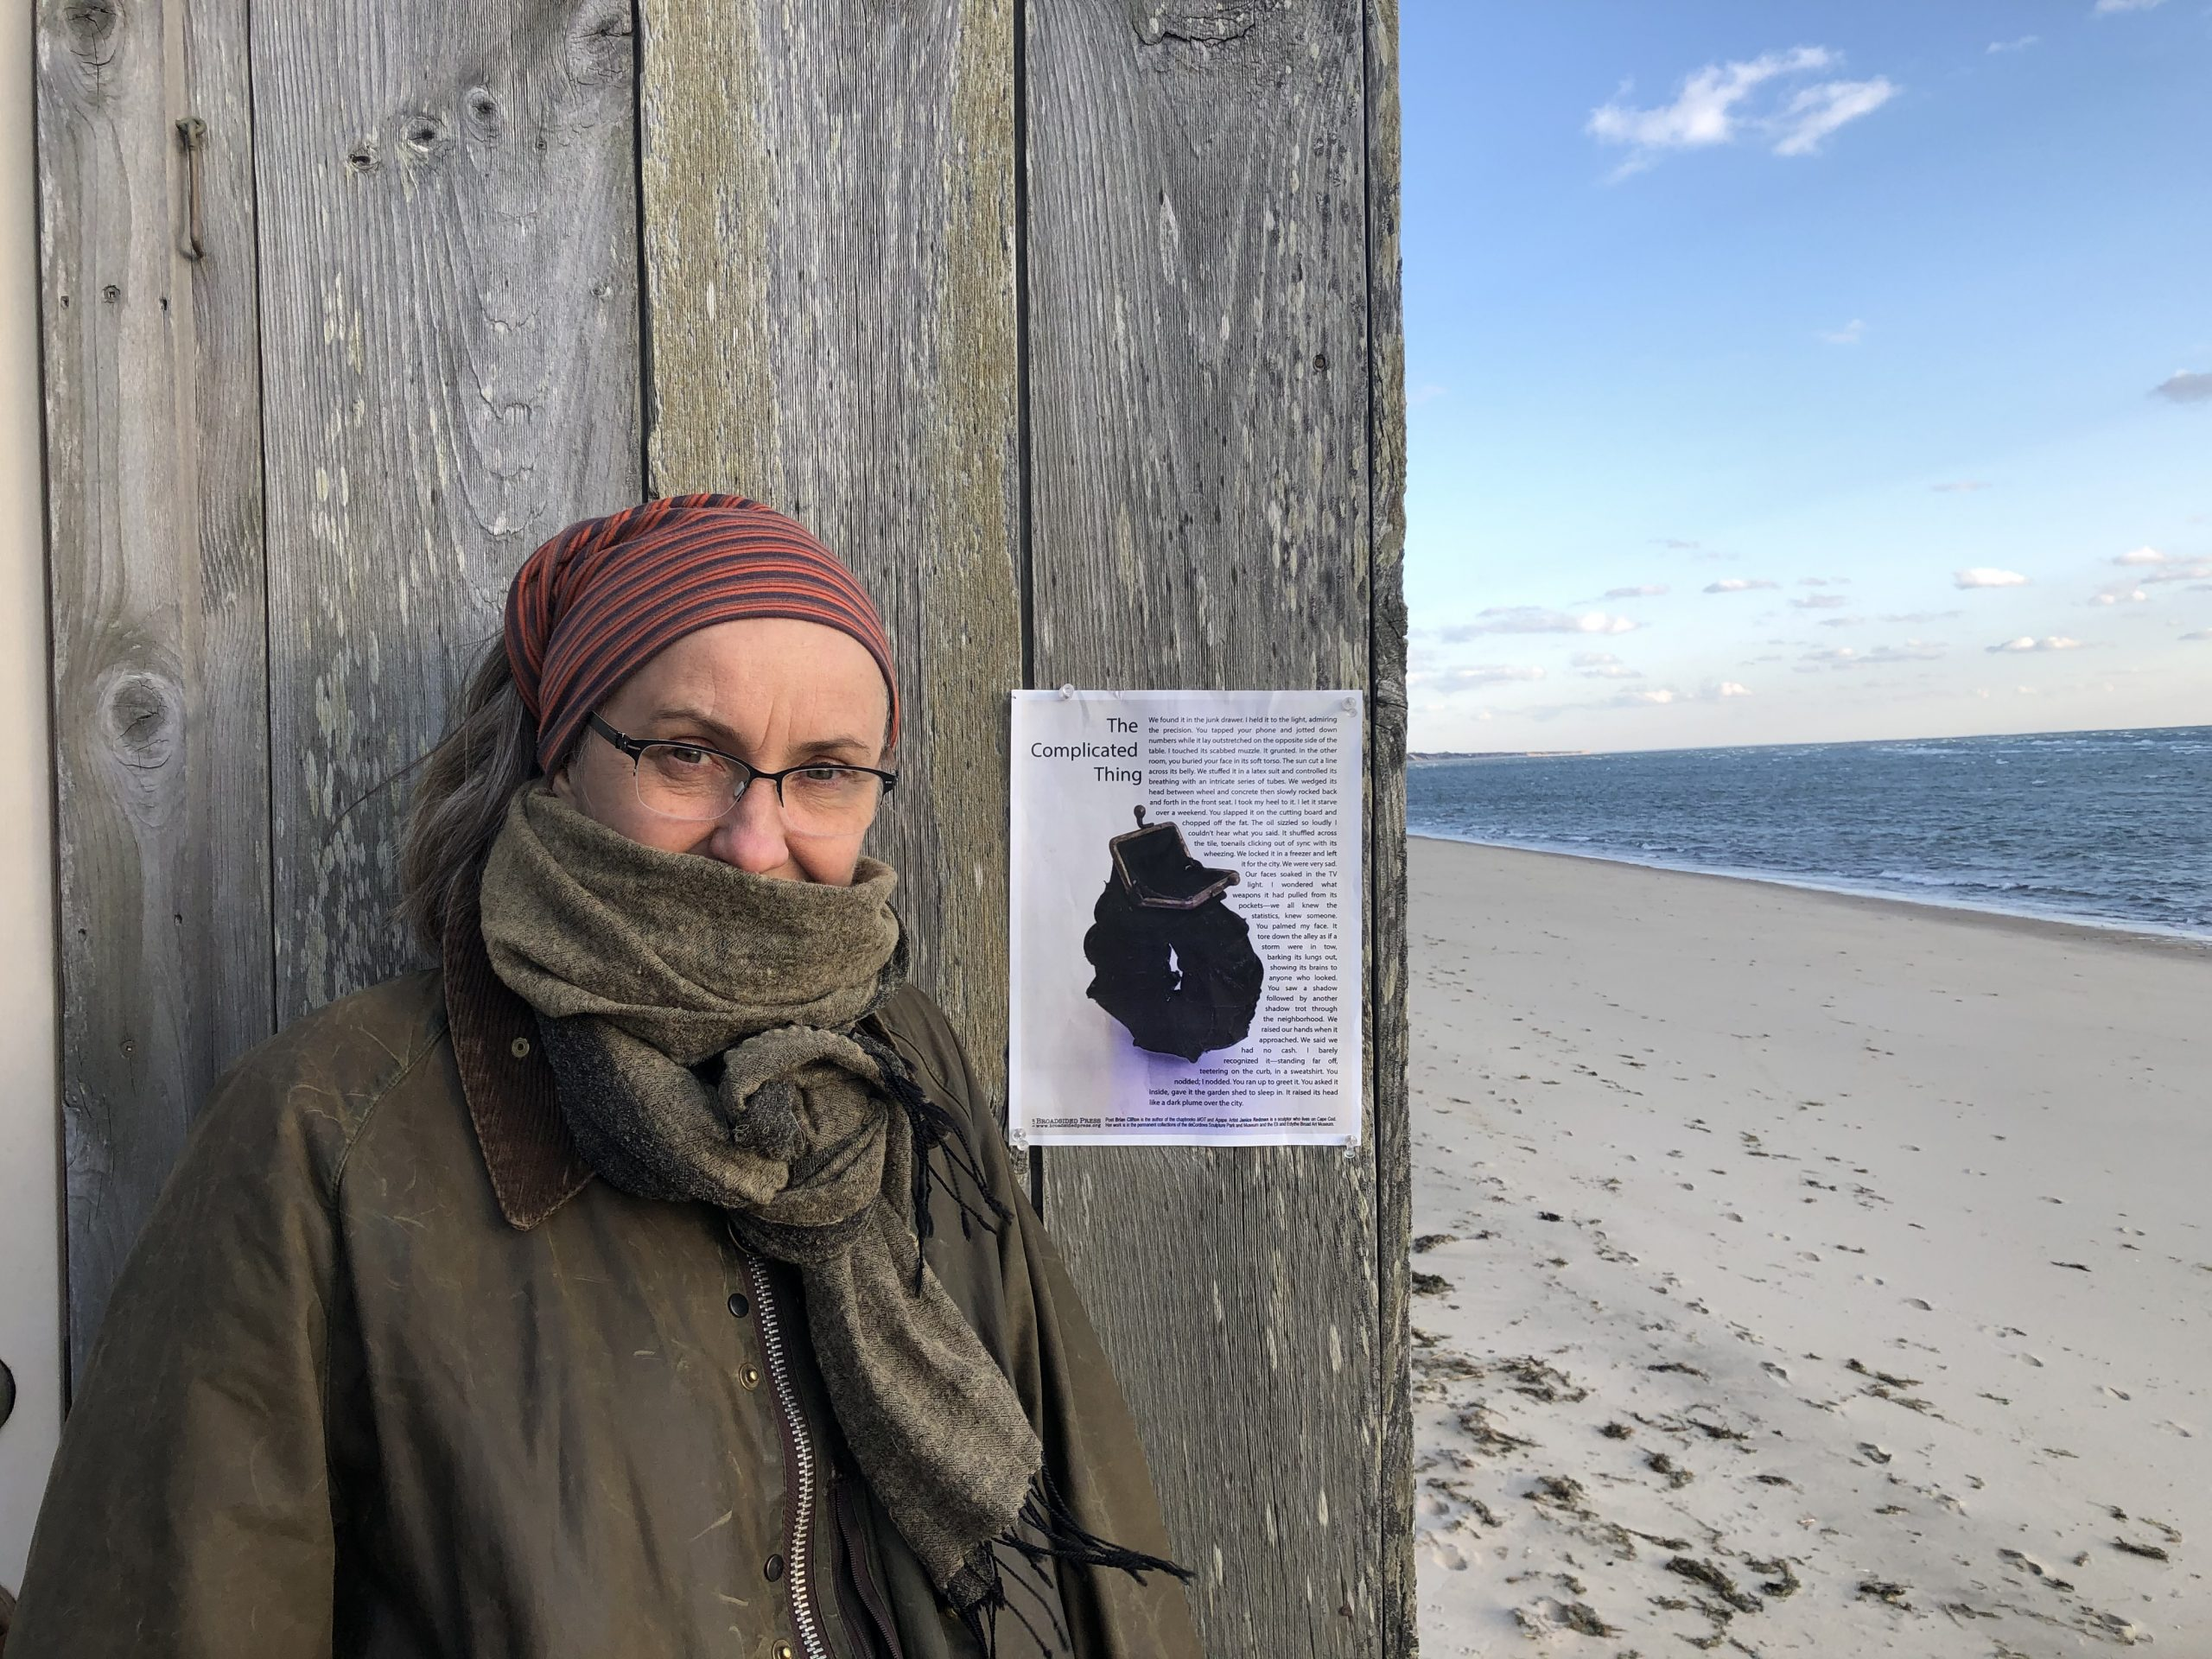 the artist standing in a hat and scarf in front of a wooden wall by the sea.  Her broadside is on the wall.